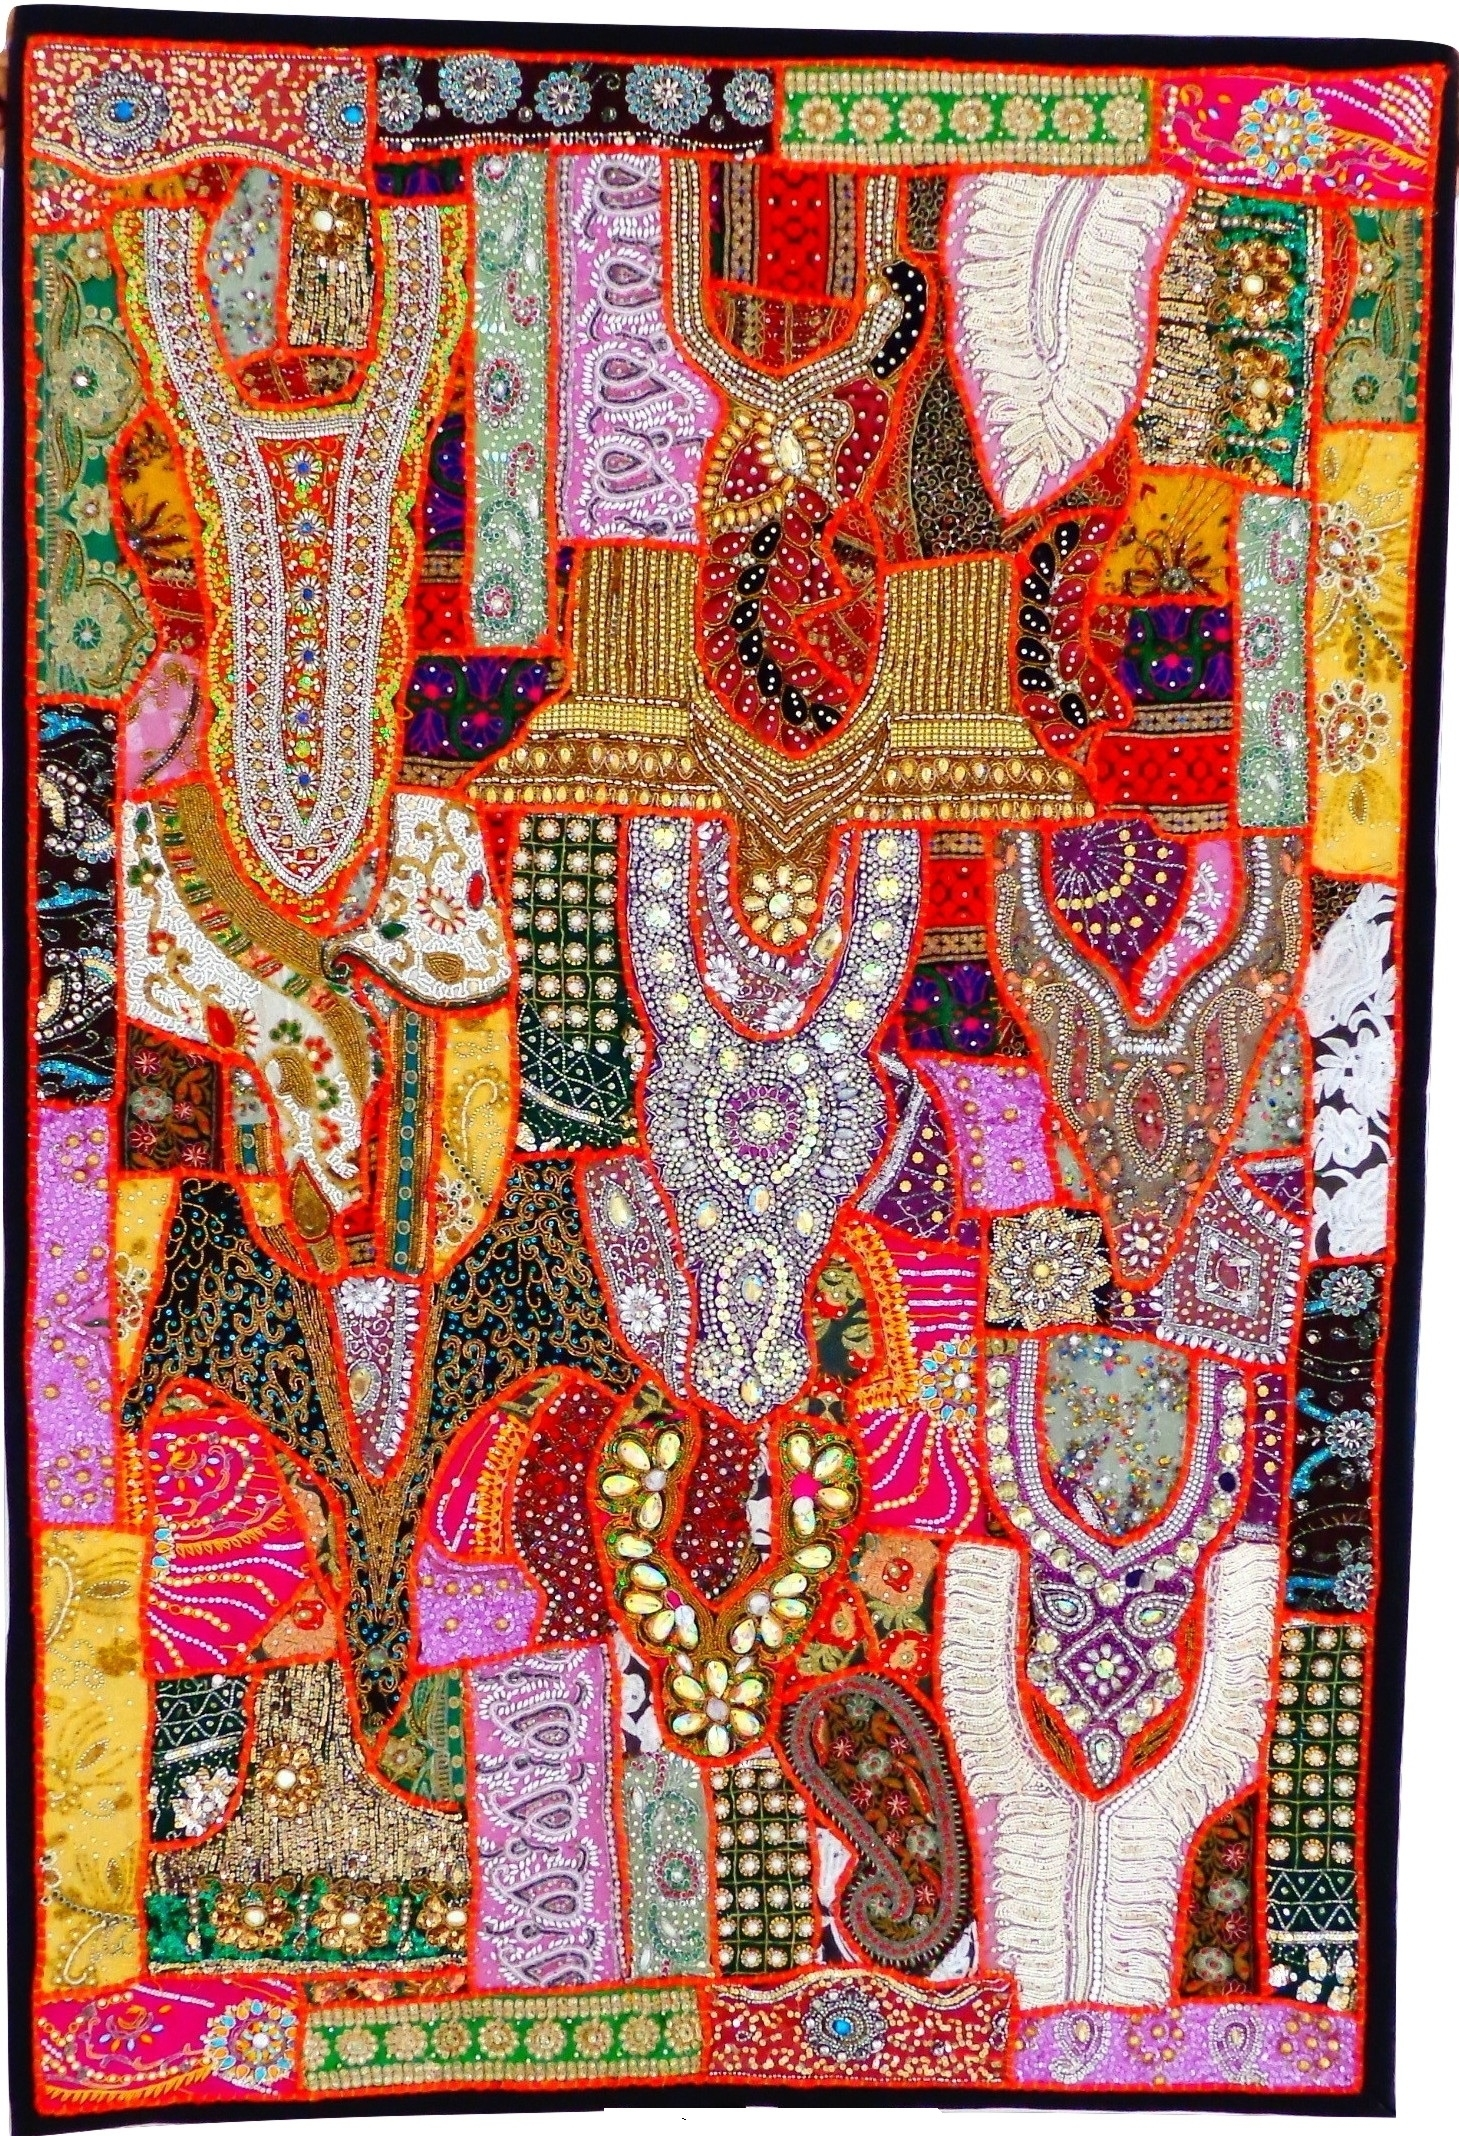 Antique Banjara Patchwork Tapestry Indian Gujarati Home Decor Wall With Most Up To Date Handmade Textile Wall Art (View 2 of 15)